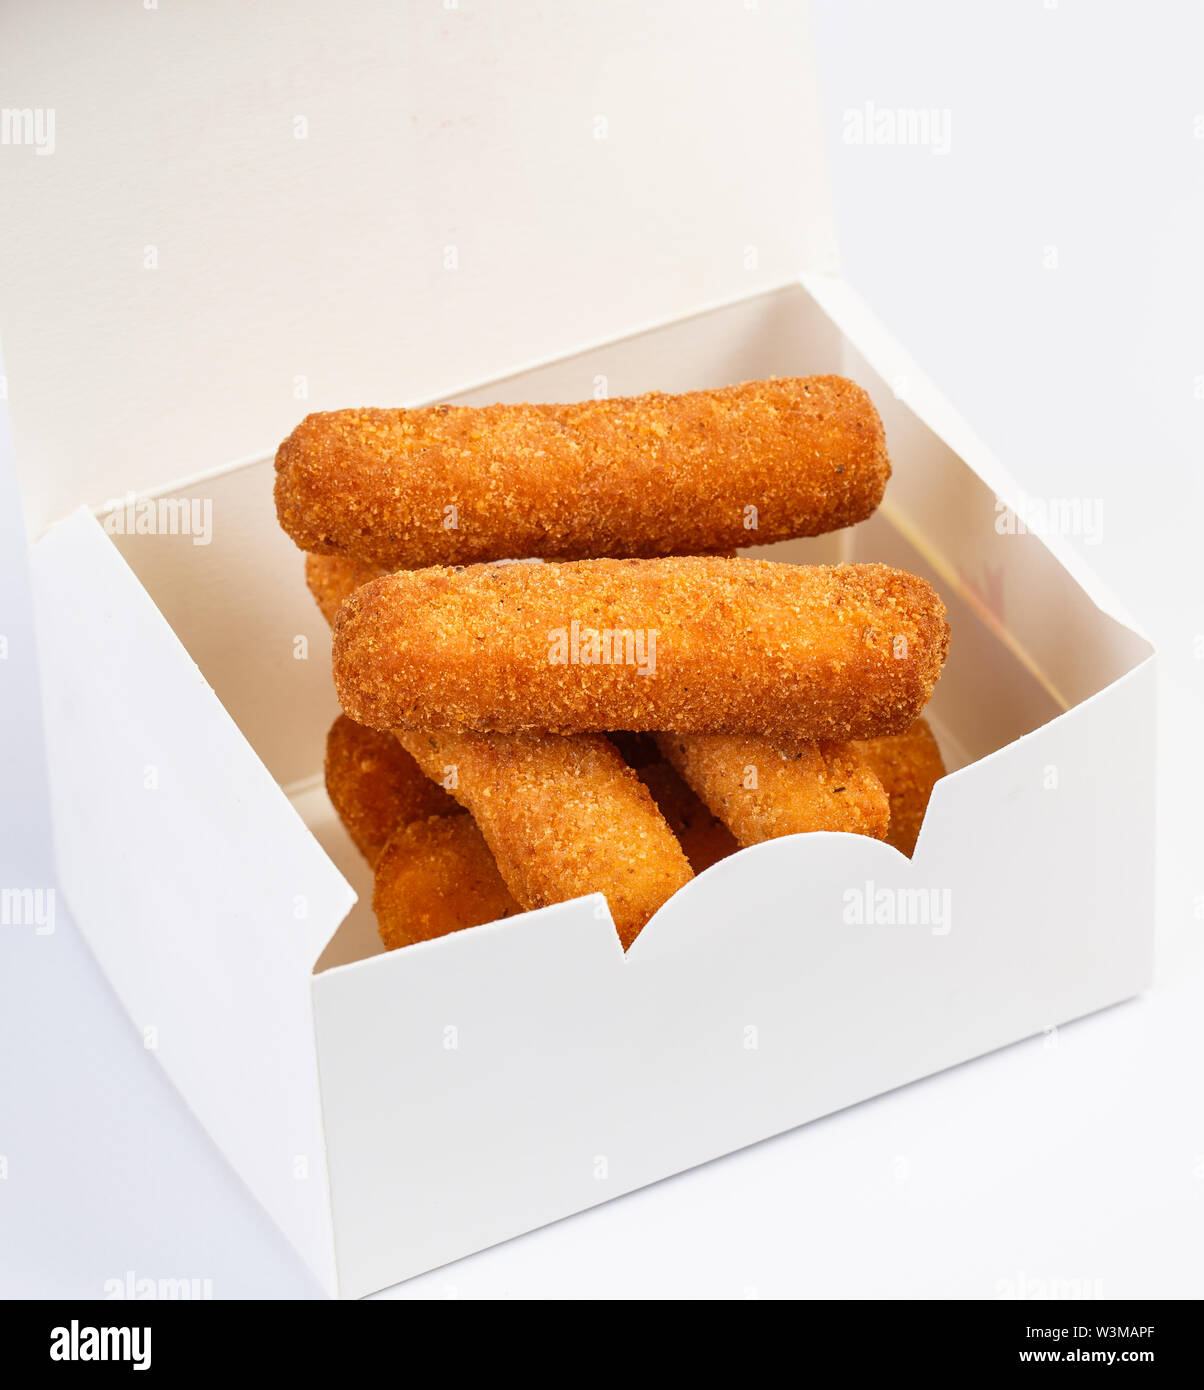 Fried cheese sticks in a white box. - Stock Image